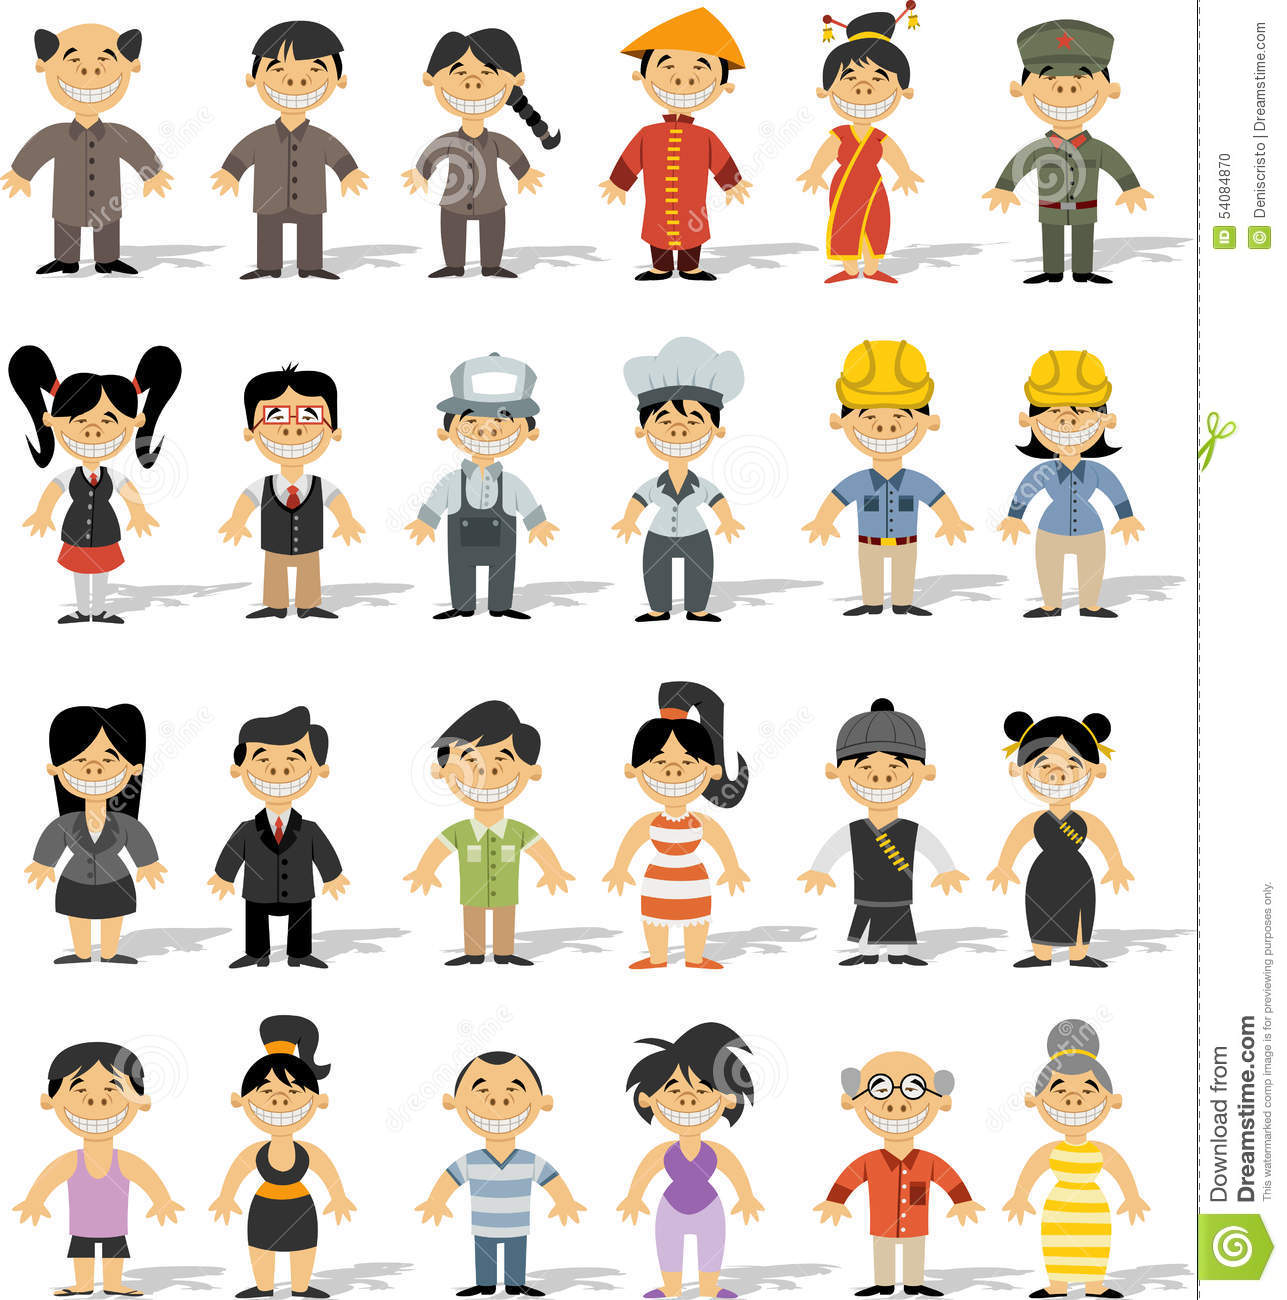 happy-cartoon-people-group-chinese-54084870.jpg